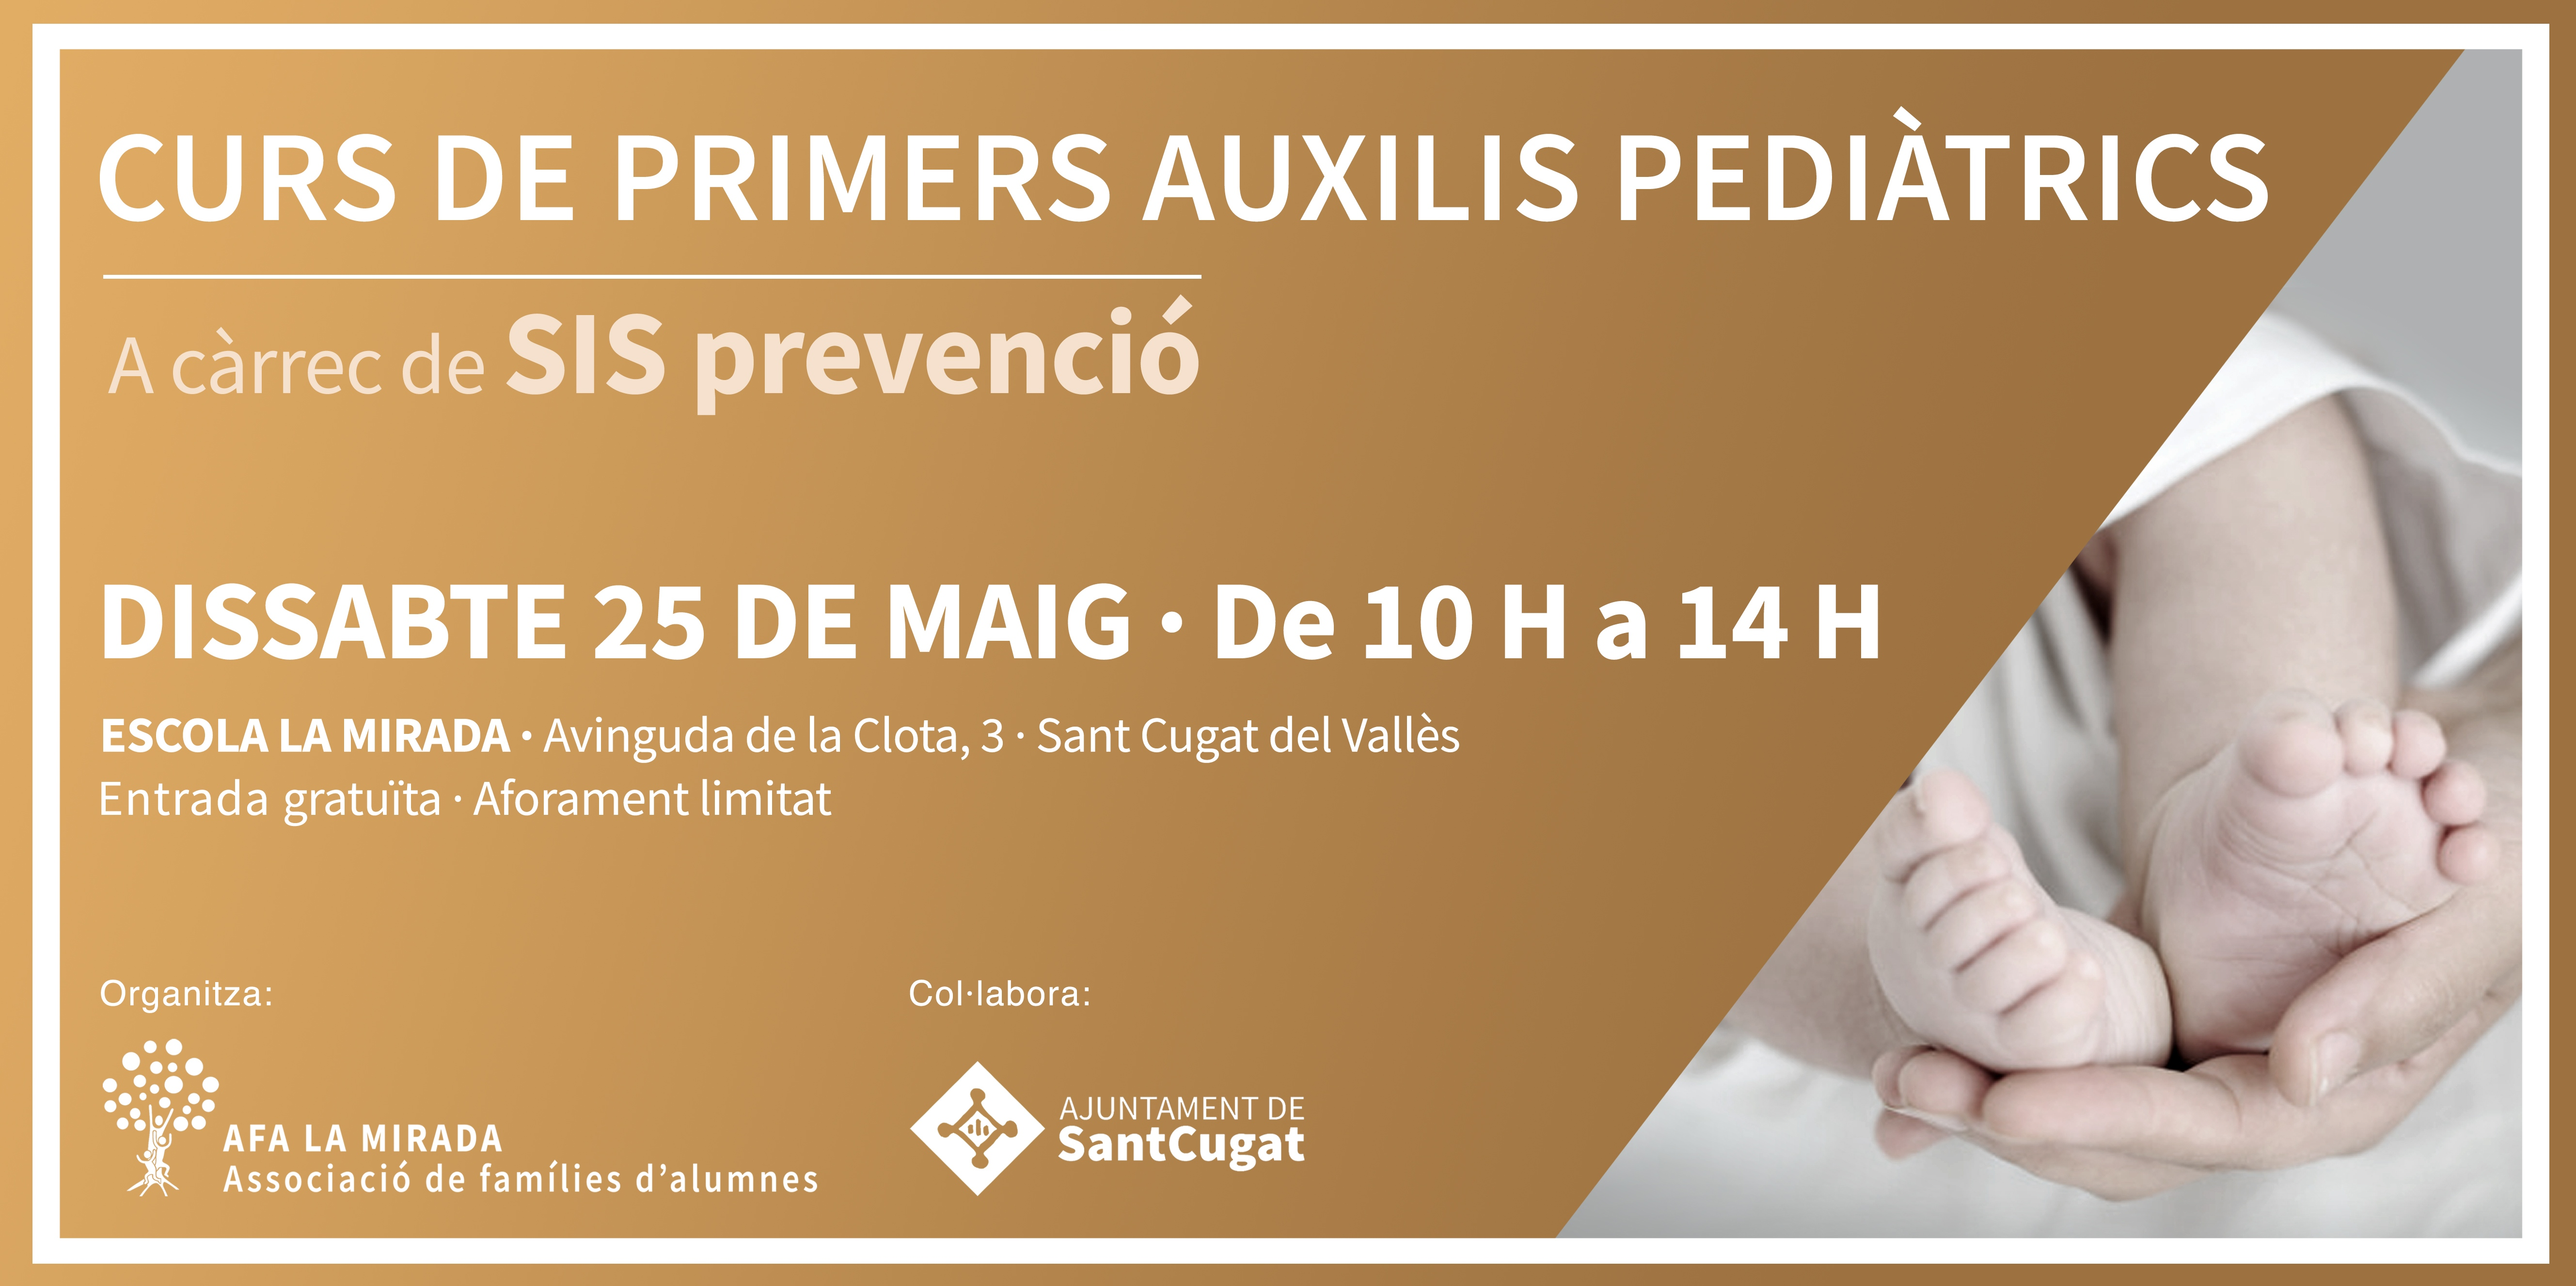 Curs de primers auxilis pediàtrics